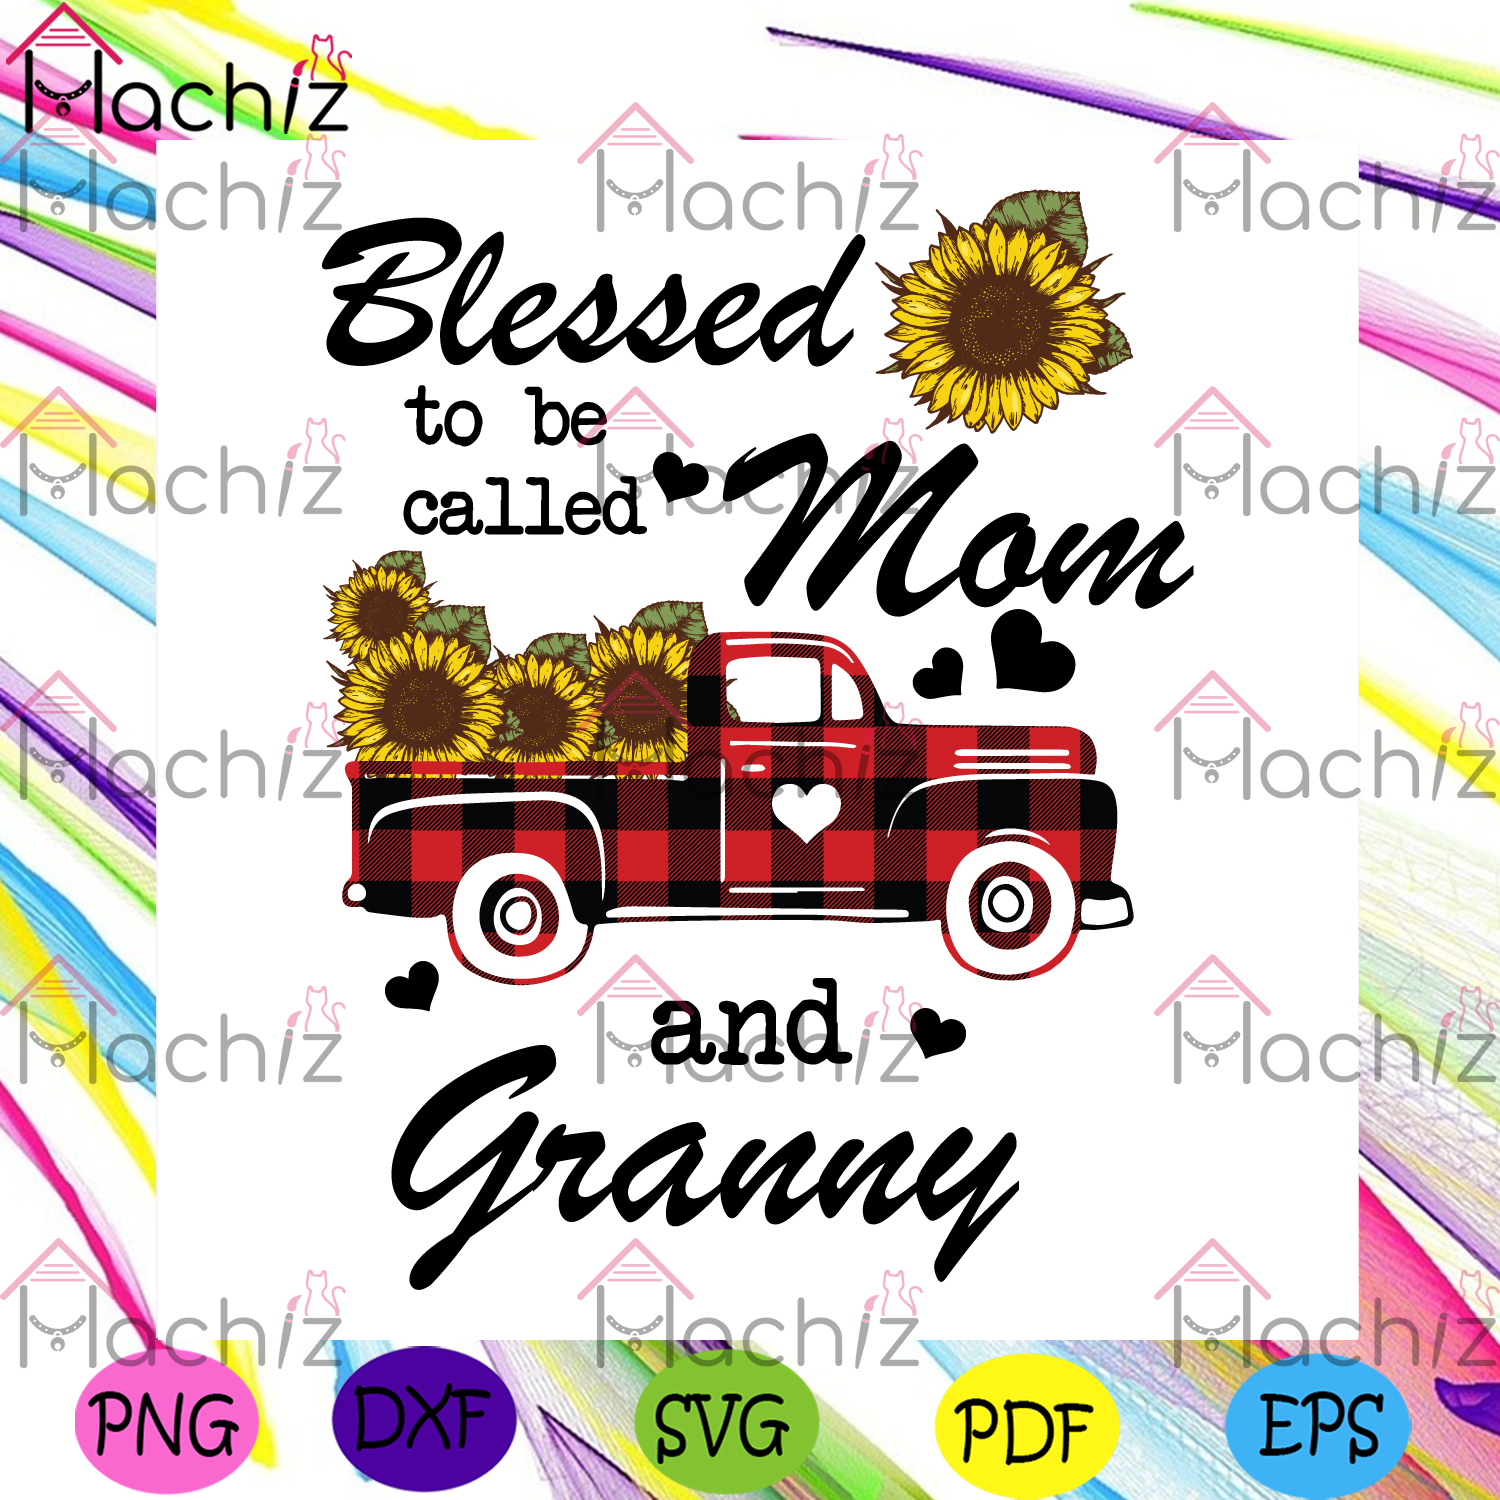 Blessed to be called mom and granny svg mothers day svg, granny svg